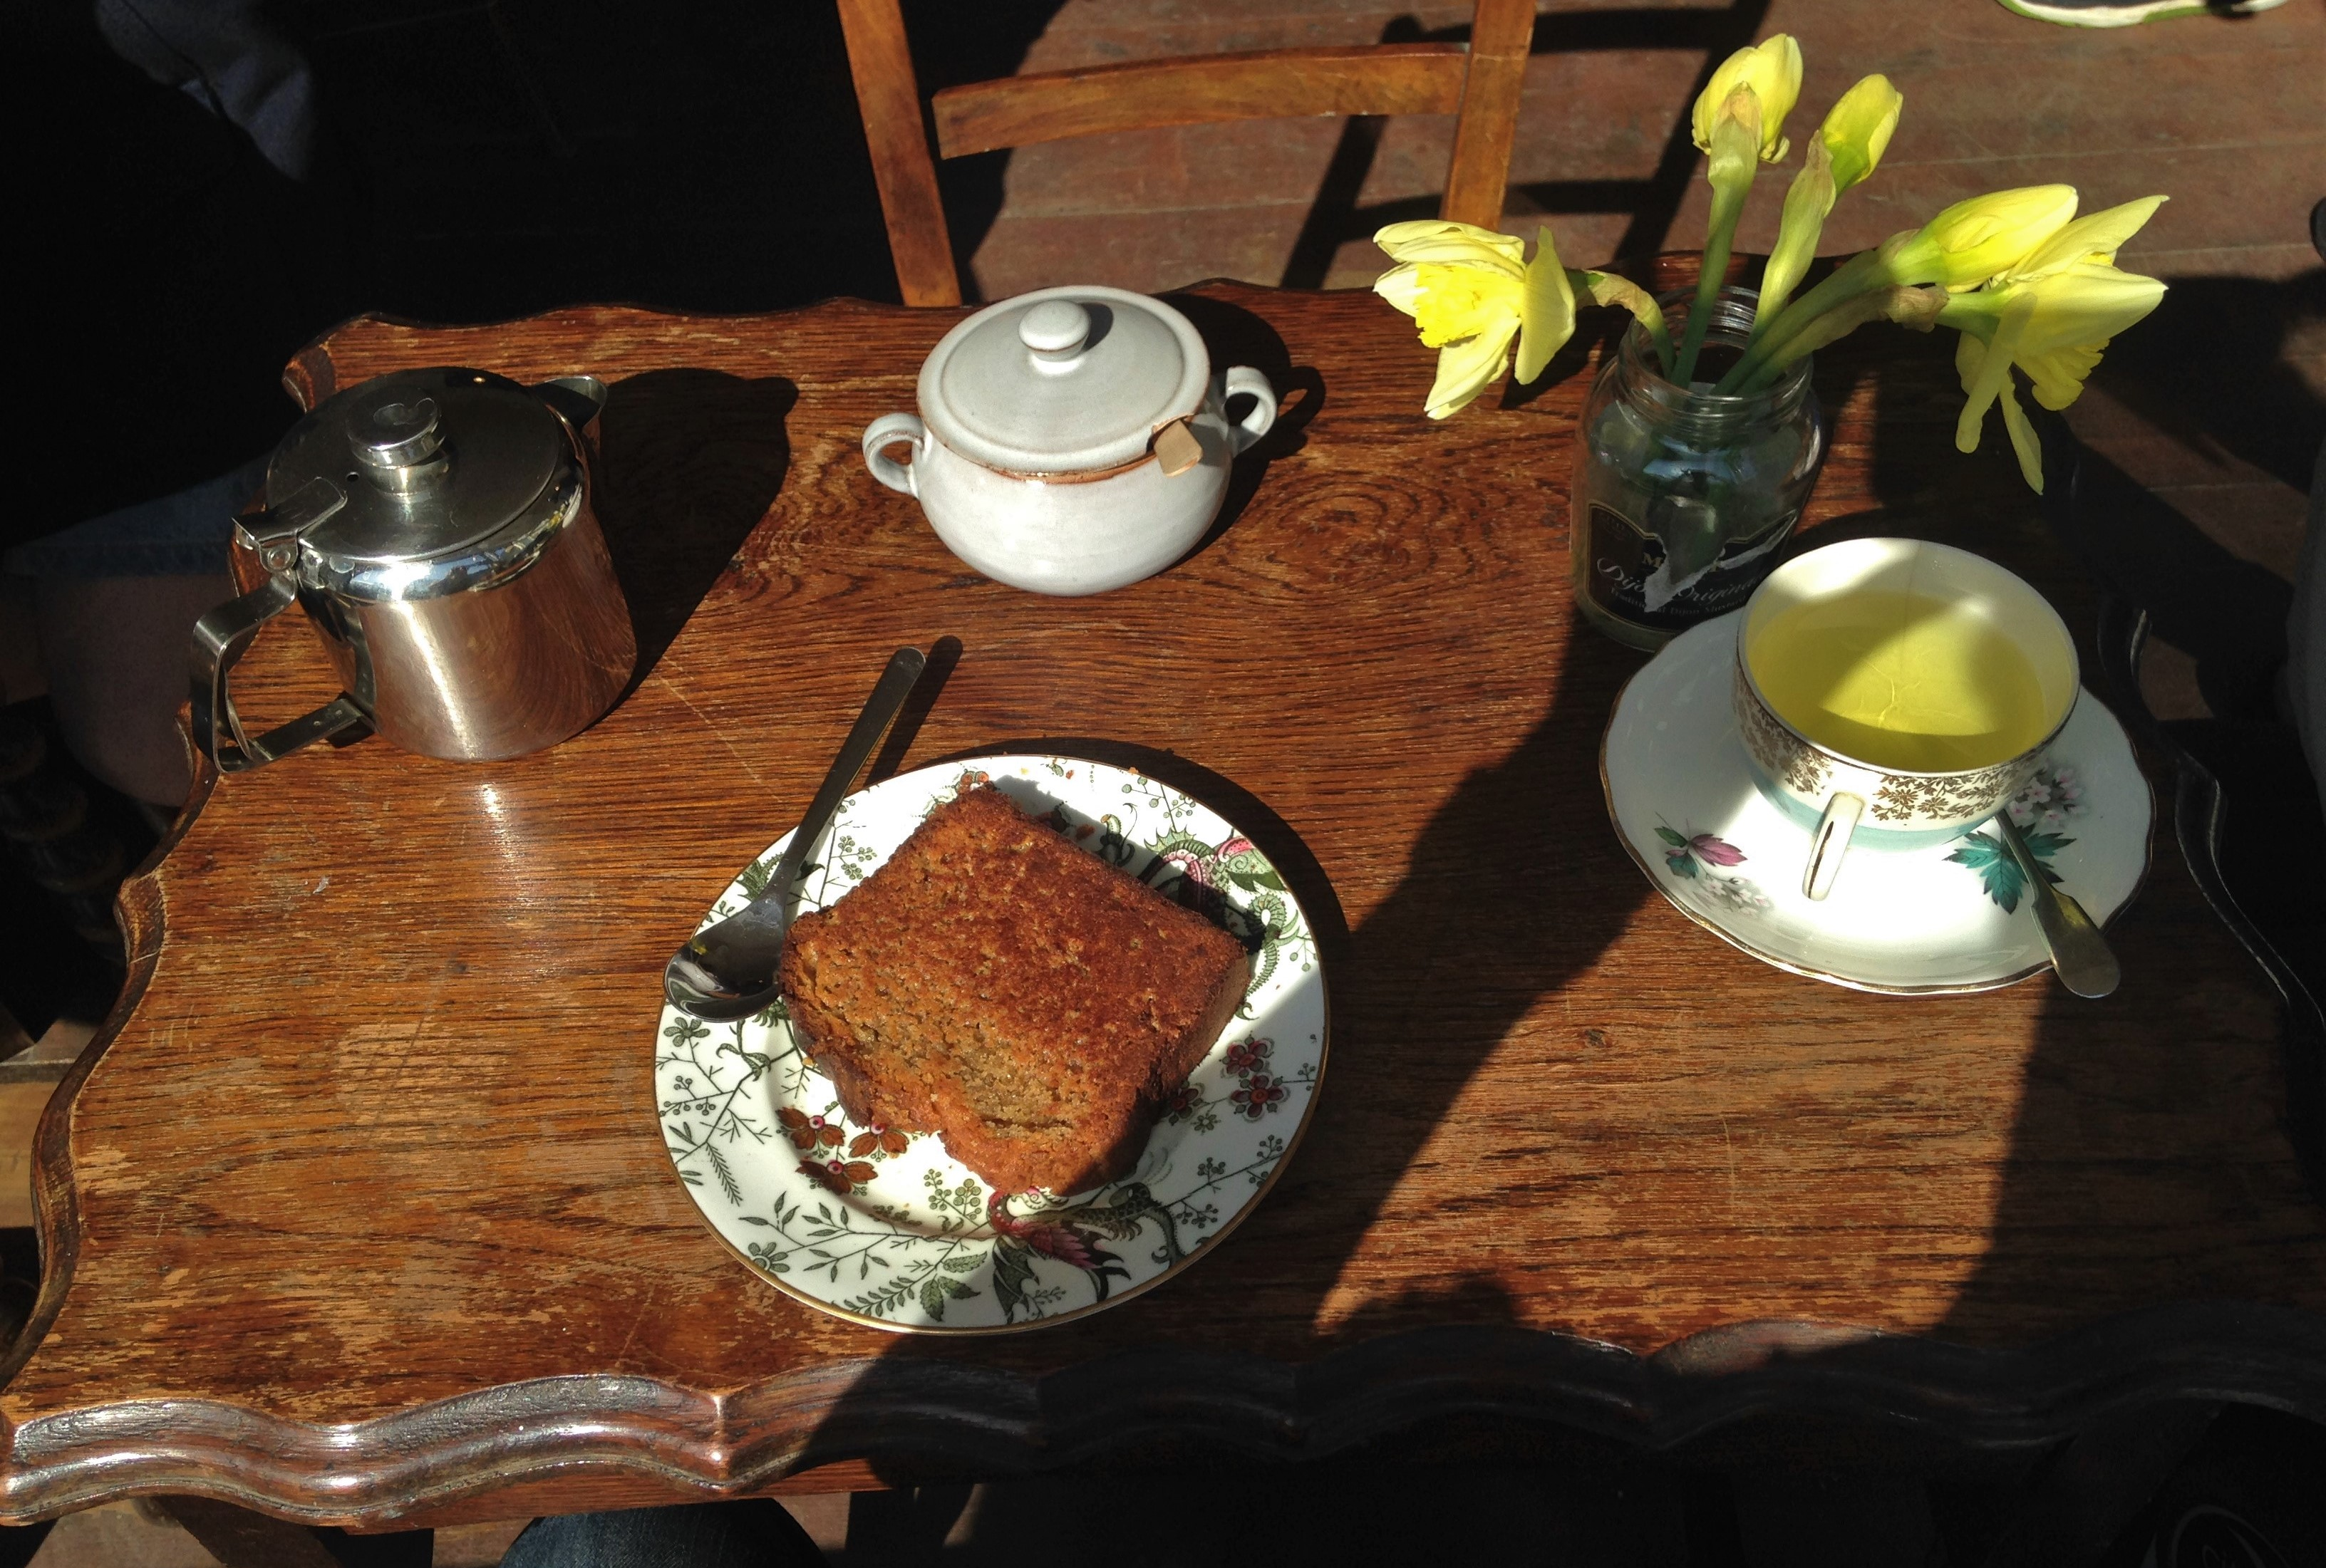 Daffodils, vintage crockery and warm toasted banana bread - kenningtonrunoff.com